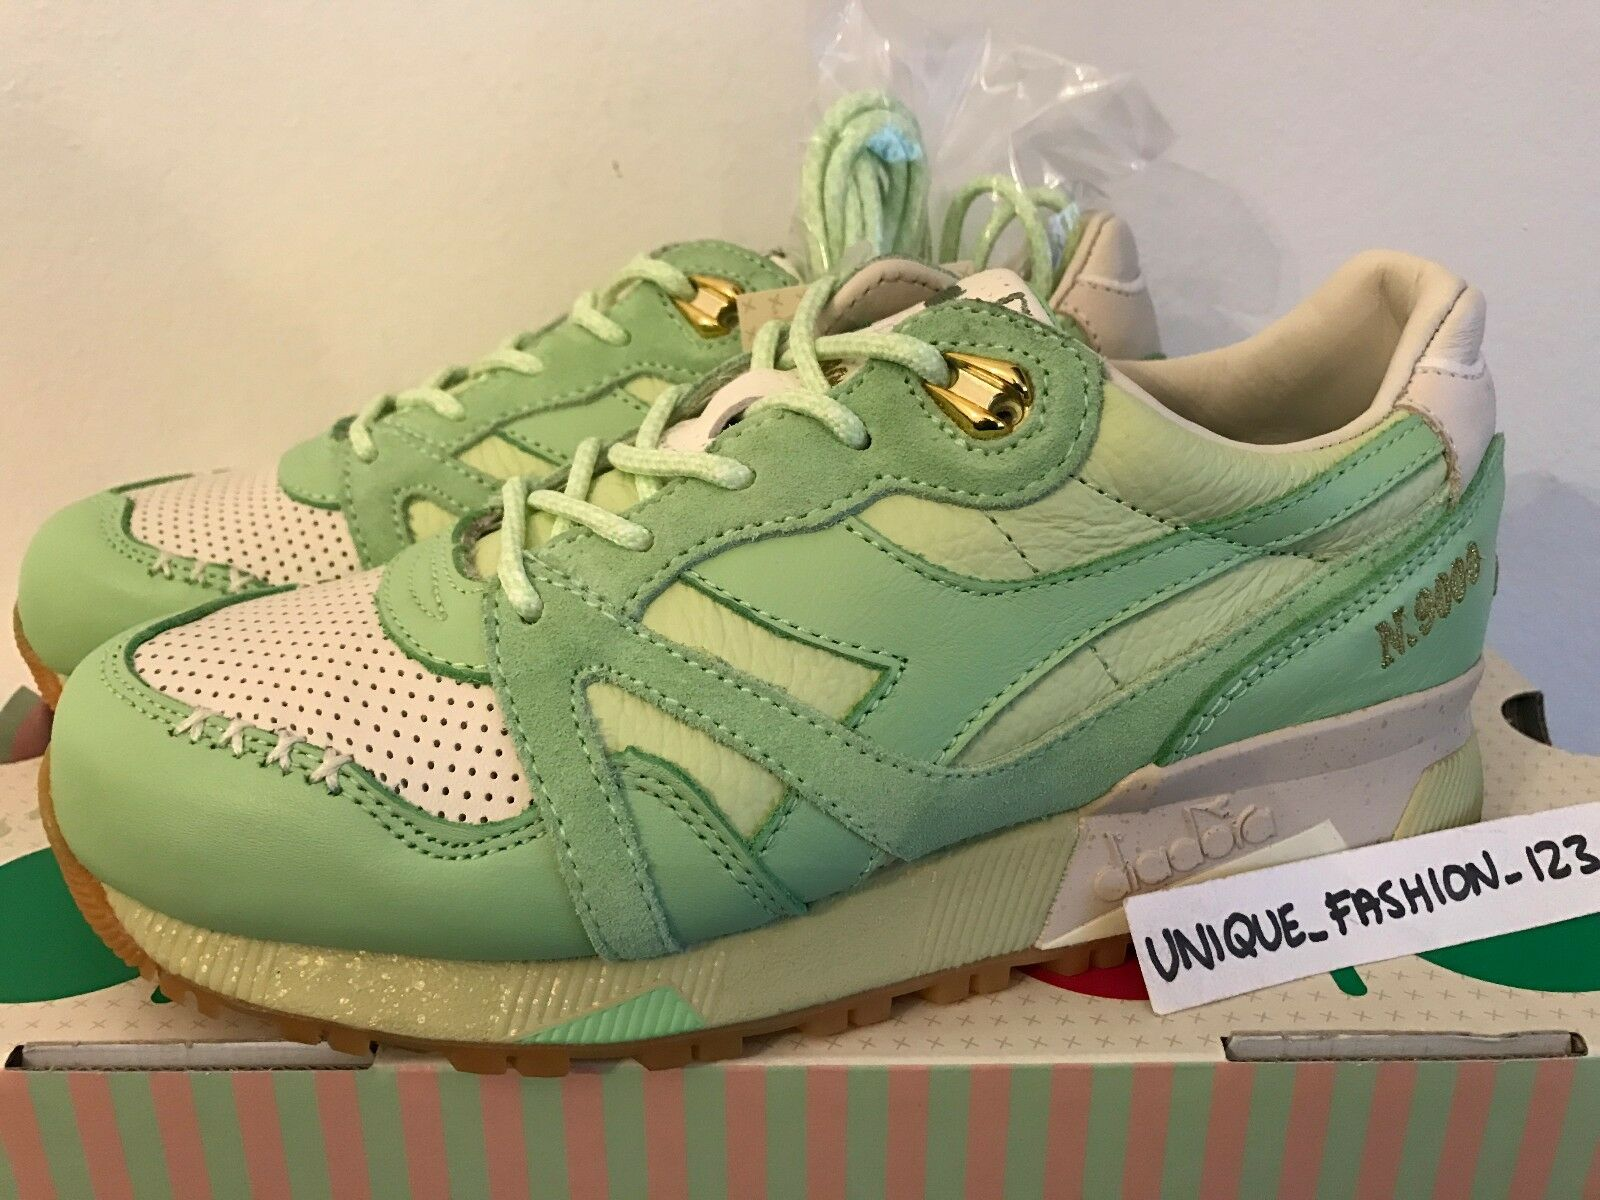 DIADORA DIADORA DIADORA N9000 X FEATURE ICE CREAM US 4.5 UK 4 36.5 LAKE GREEN TITOLO LEATHER 4917d5